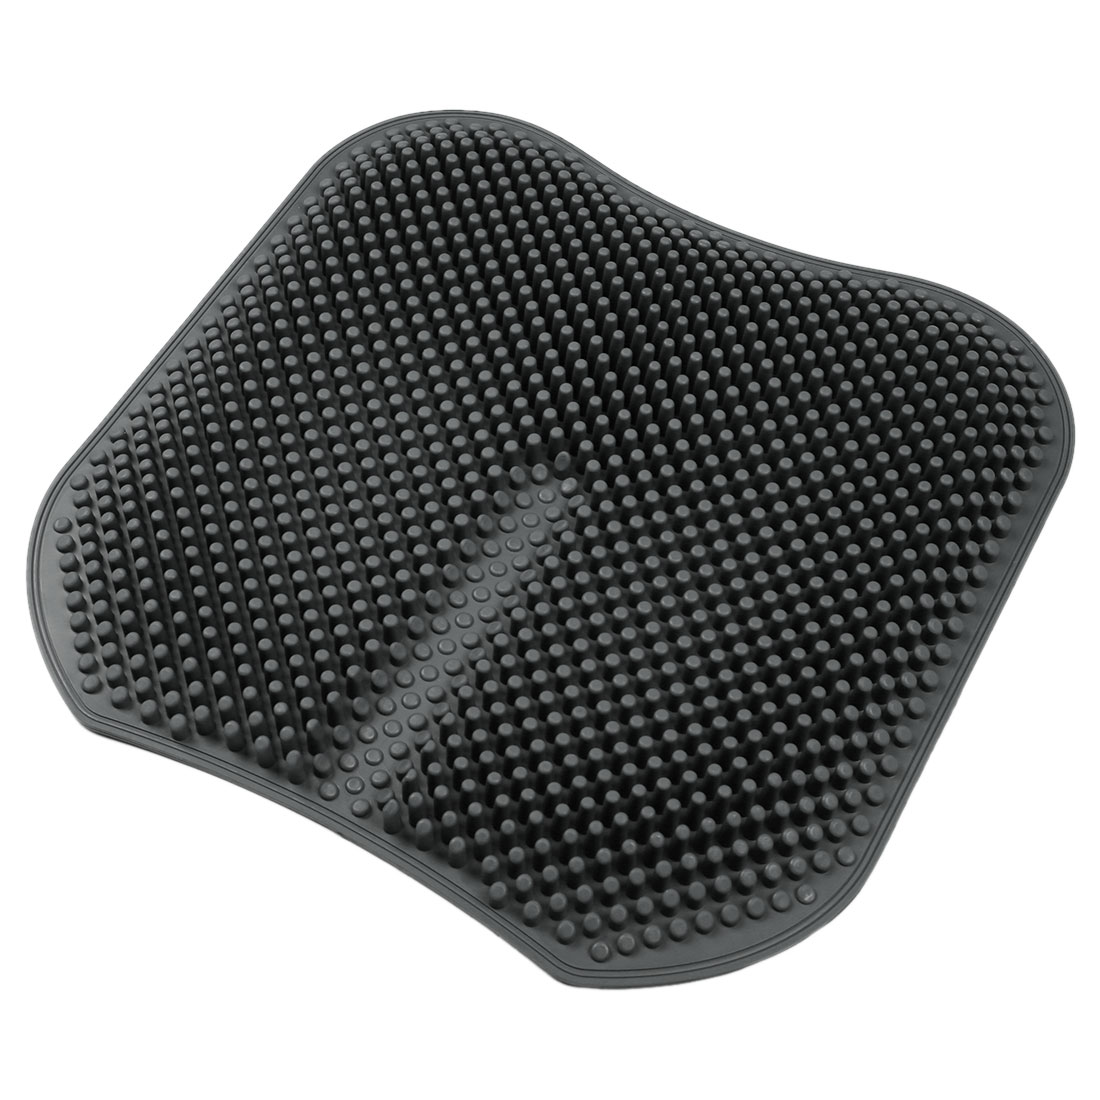 Gray Square Shaped Breathable Rubber Car Seat Cushion Cover